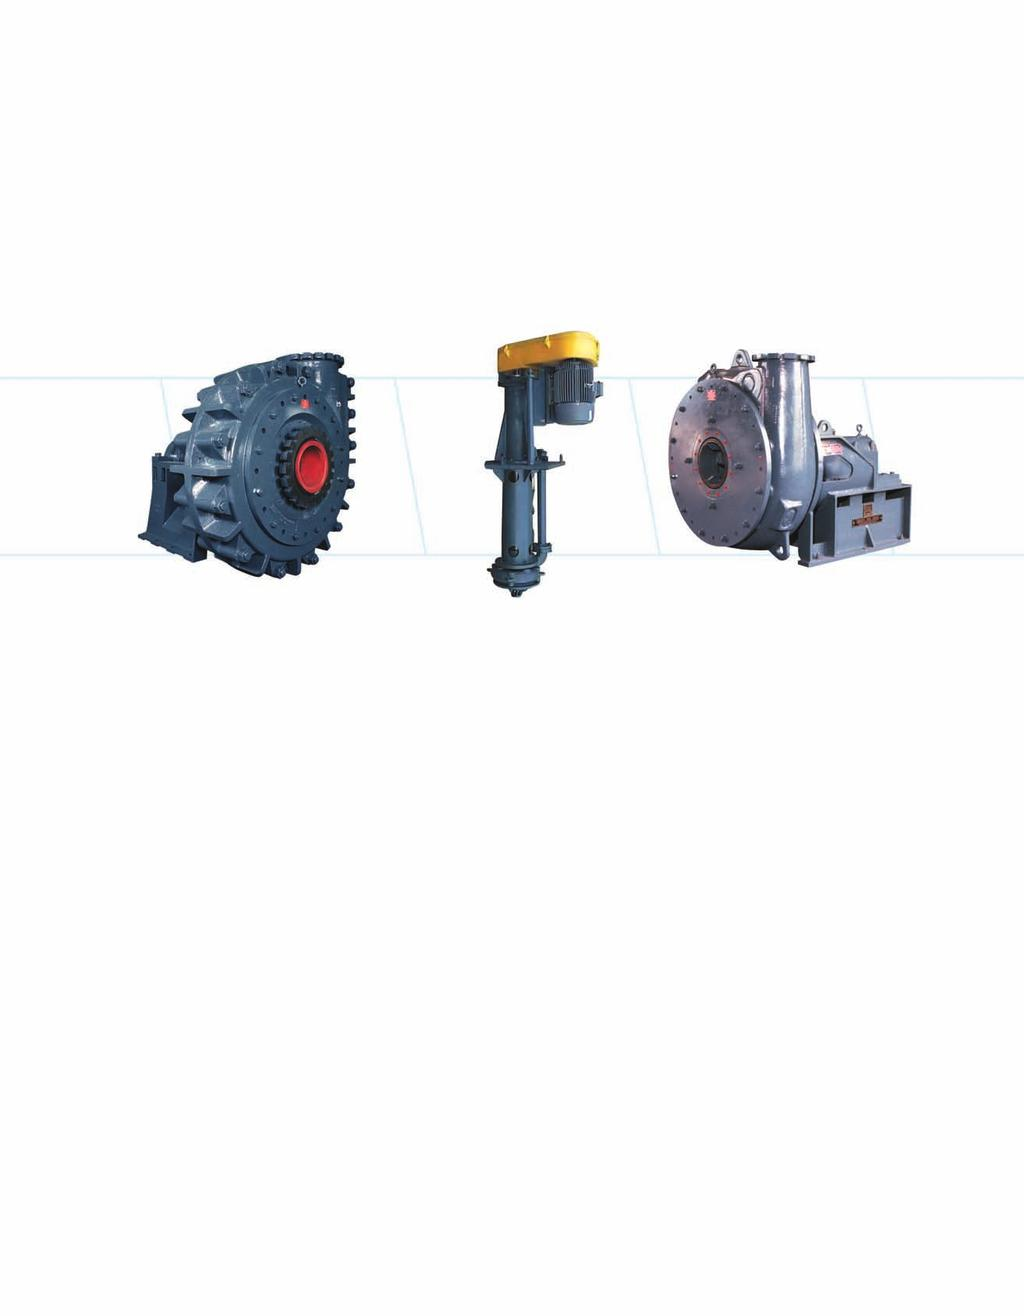 >> LSR Pumps >> LCV (Vertical) Pumps >> LSA-S Pumps Superior hydraulic design, groundbreaking materials and precision manufacturing, give the LSR an incredibly low Total Cost of Ownership.